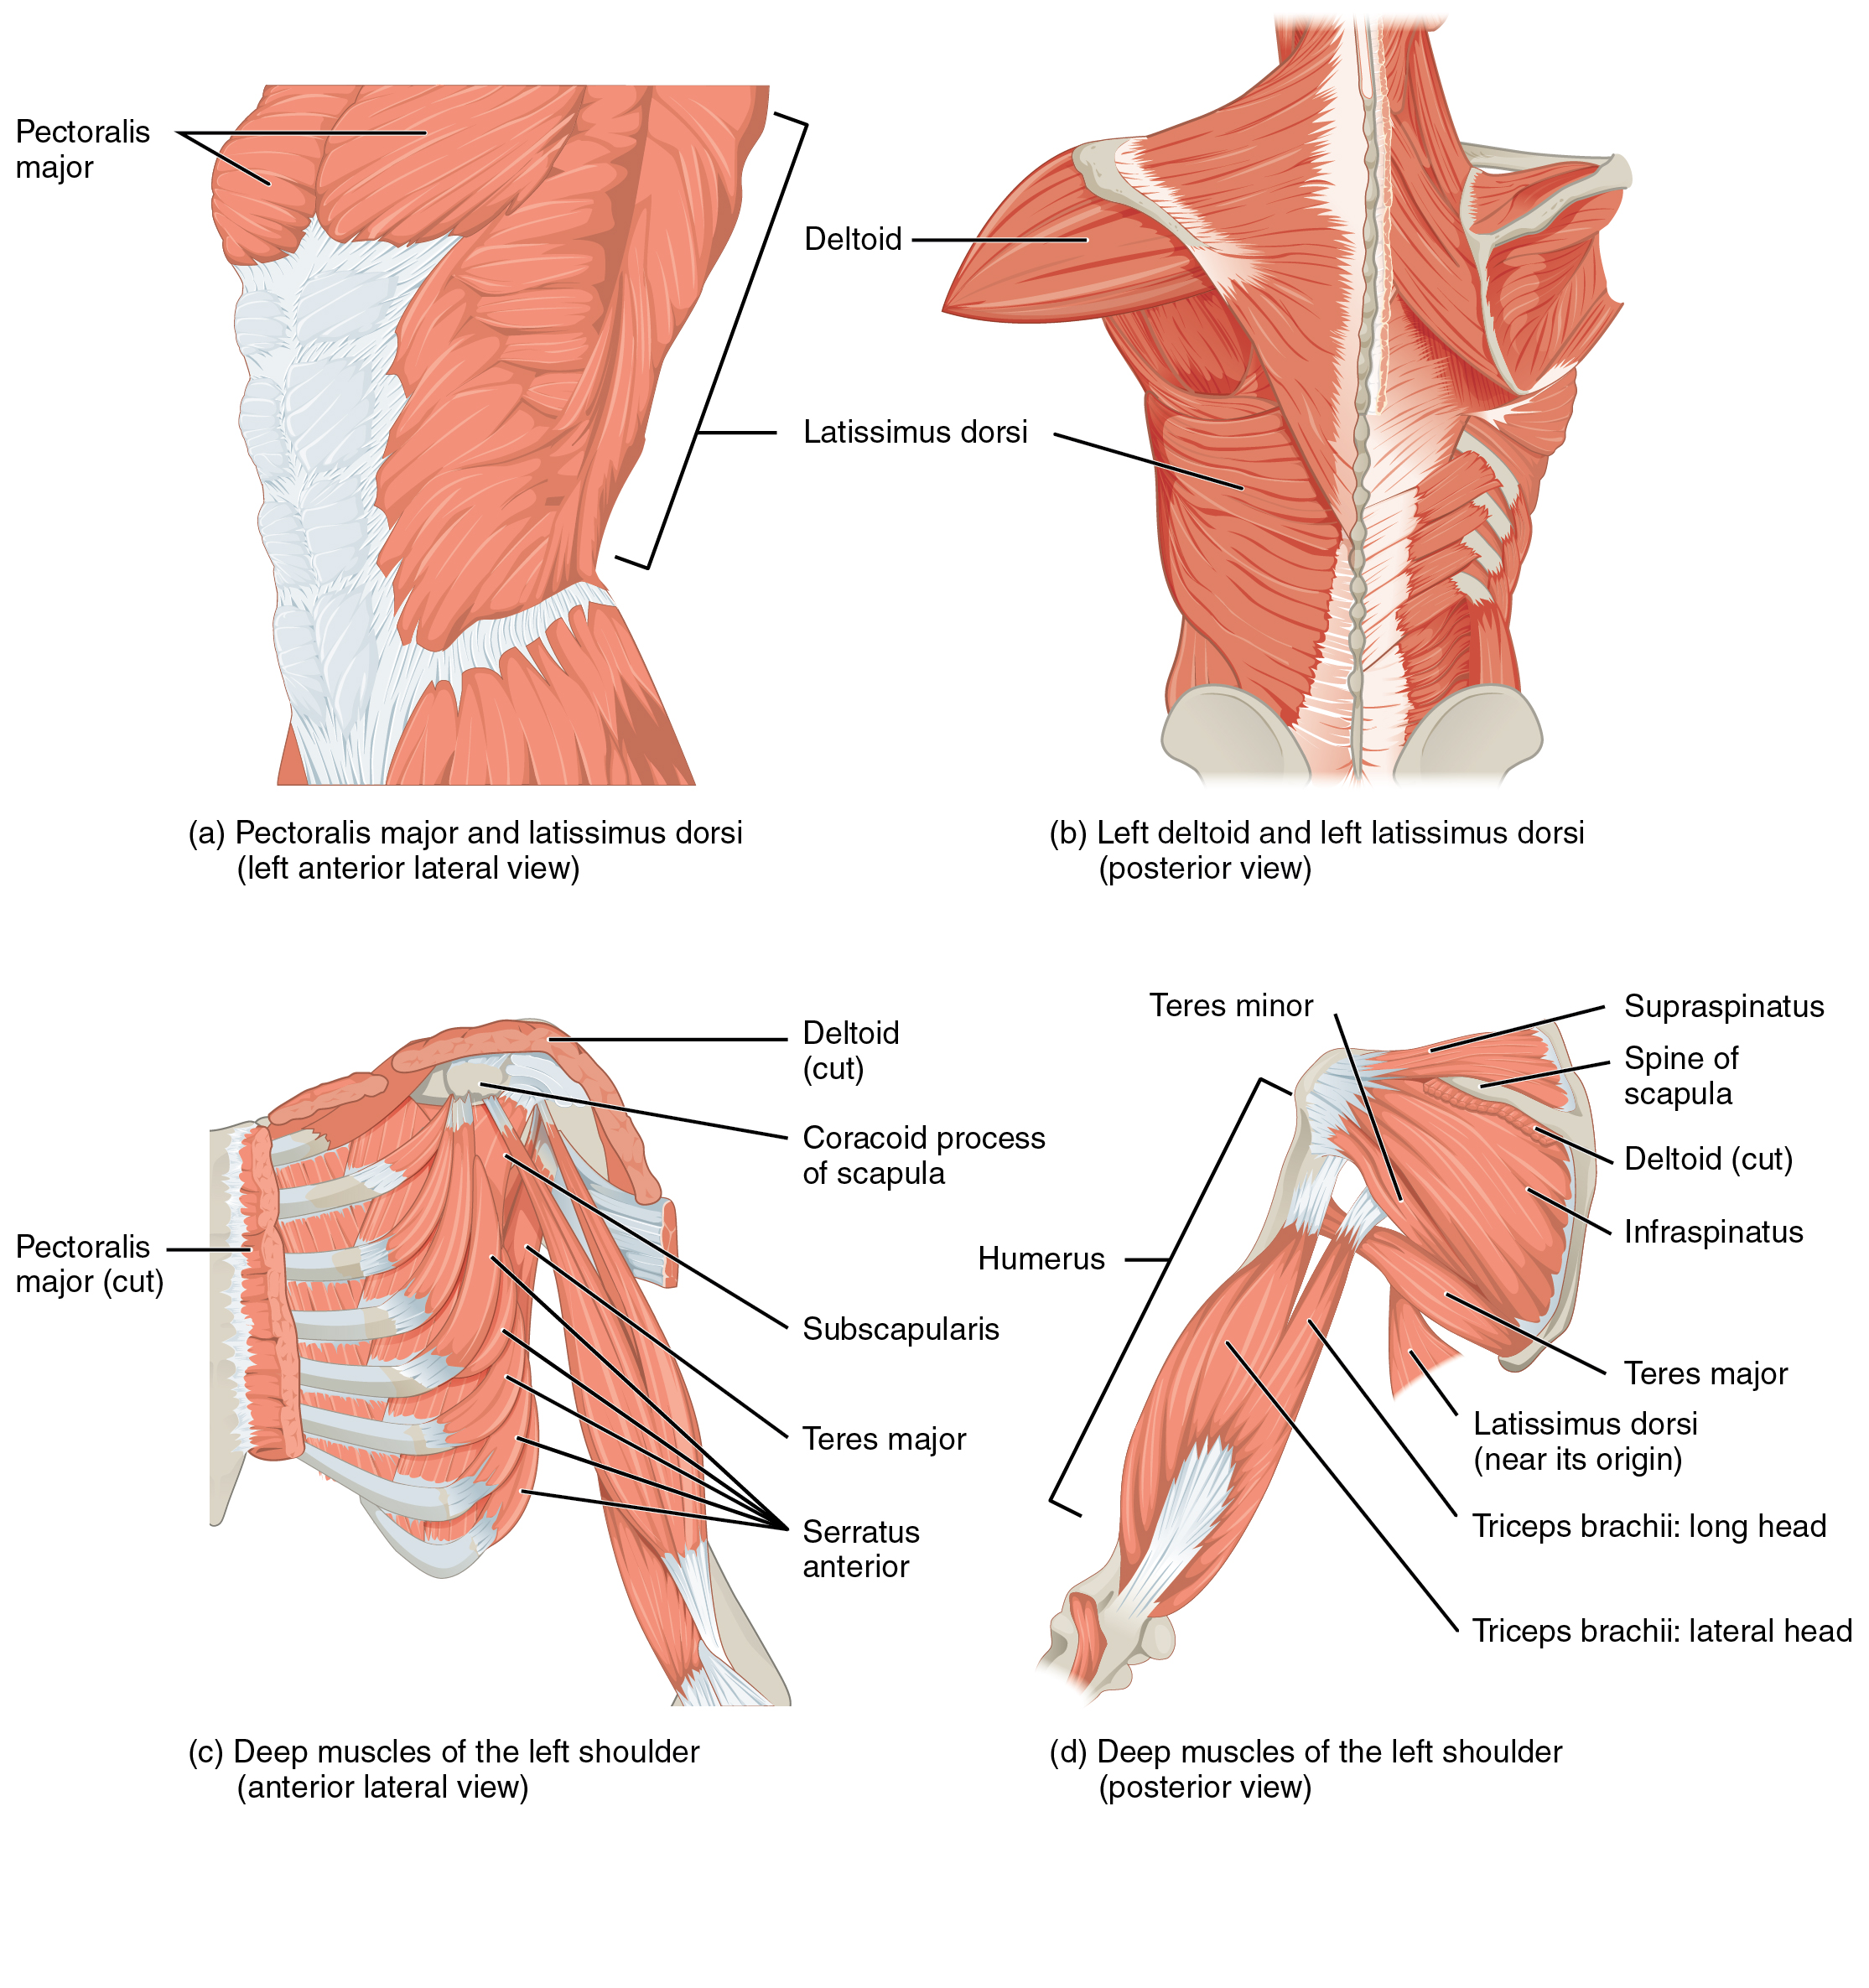 Anatomy and Physiology - Muscles of the Pectoral Girdle and Upper Limbs